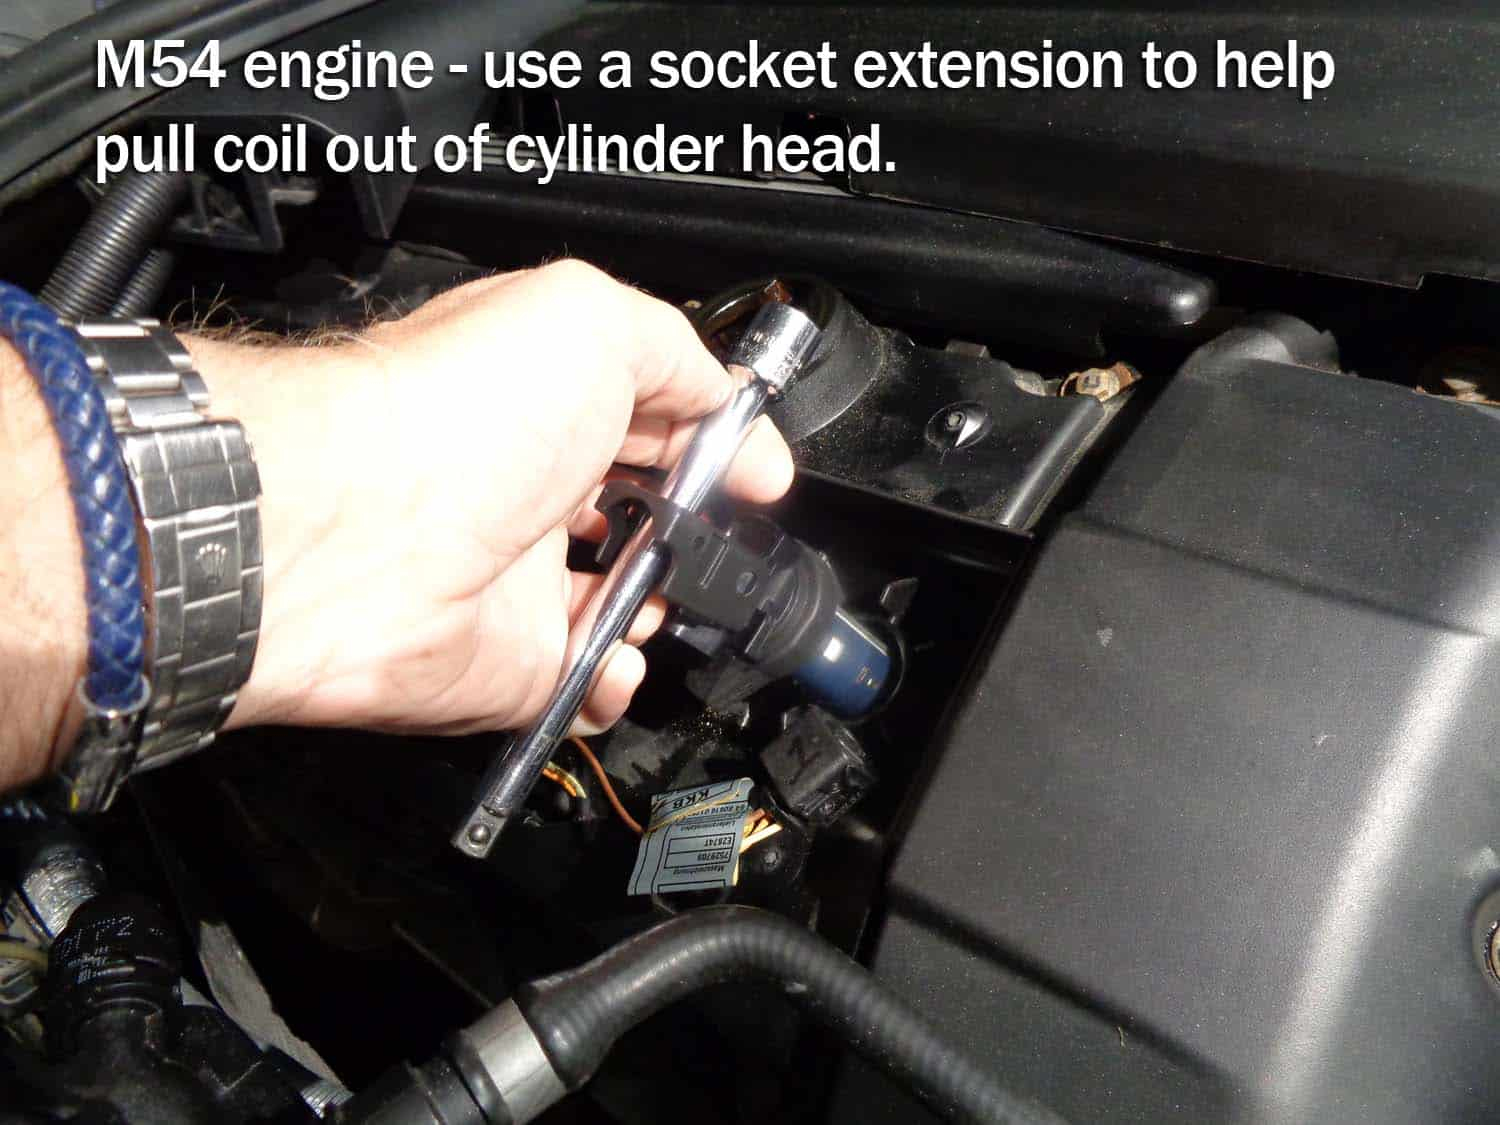 BMW 3 Series E46 Tune Up - Spark Plug and Ignition Coil Maintenance